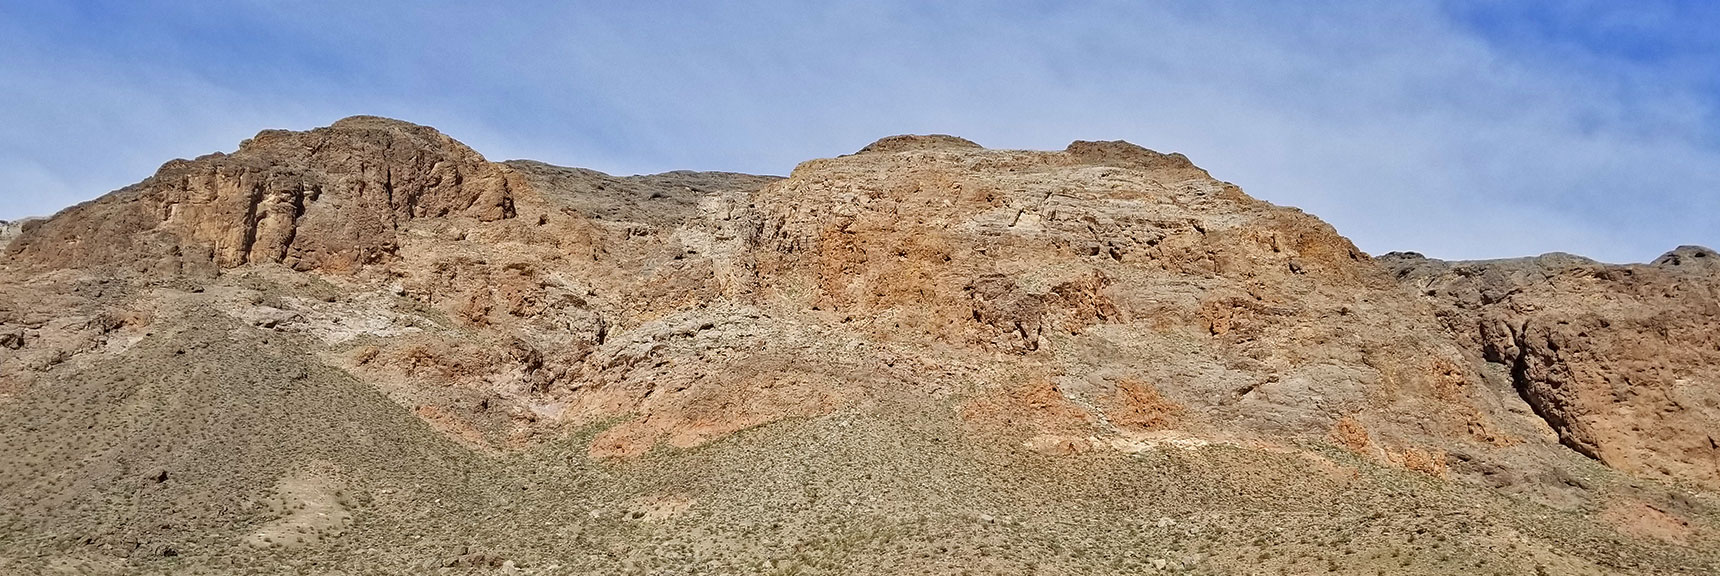 Mideastern View of Muddy Mountains from Echo Road Intersection On Northshore Road in Lake Mead National Park, Nevada